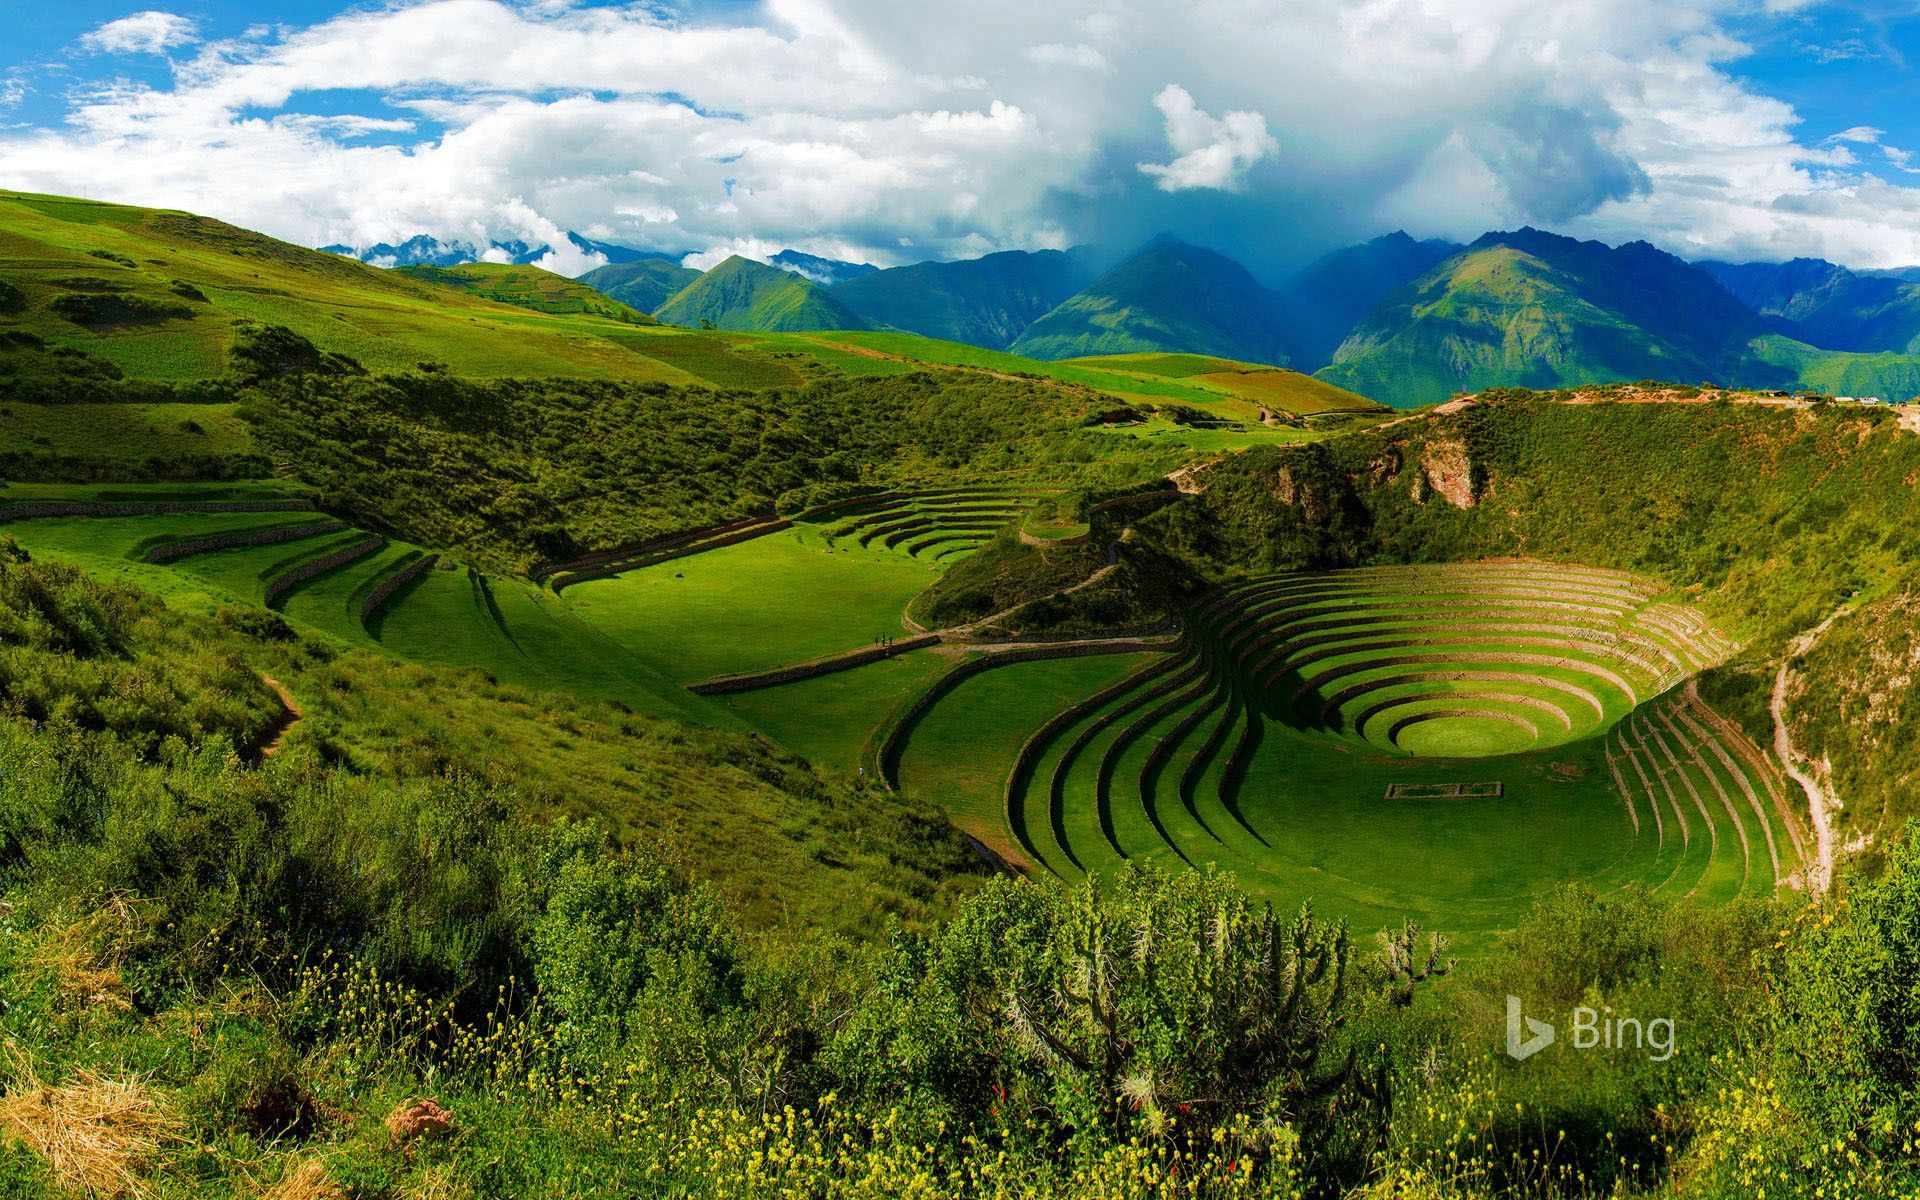 The ancient Inca civilization terraced these deep depressions in the hills near Maras, Peru. Temperature variations between levels and a complex irrigation system suggest the Incans were performing climate experiments on crops.